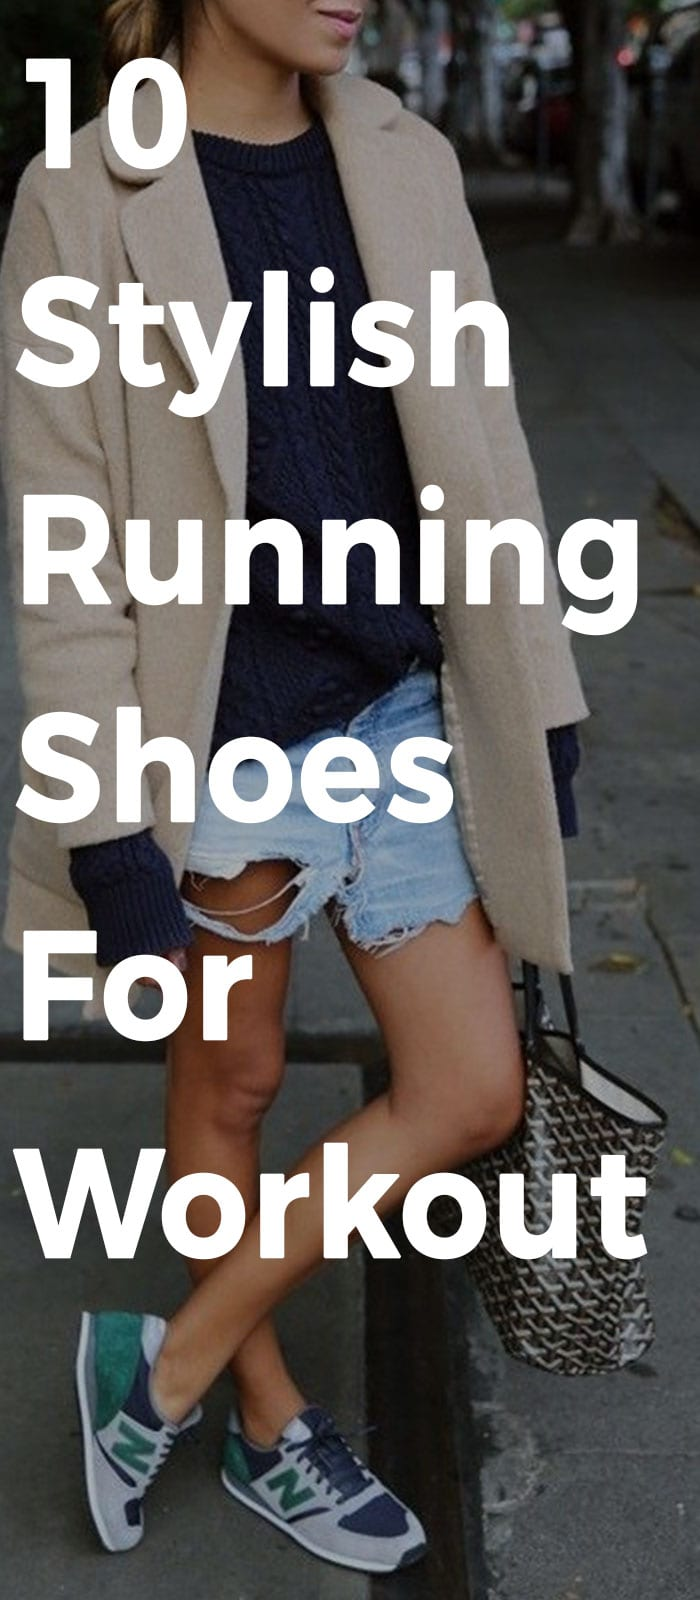 10 Stylish Running Shoes To Add Style In Your Workout!